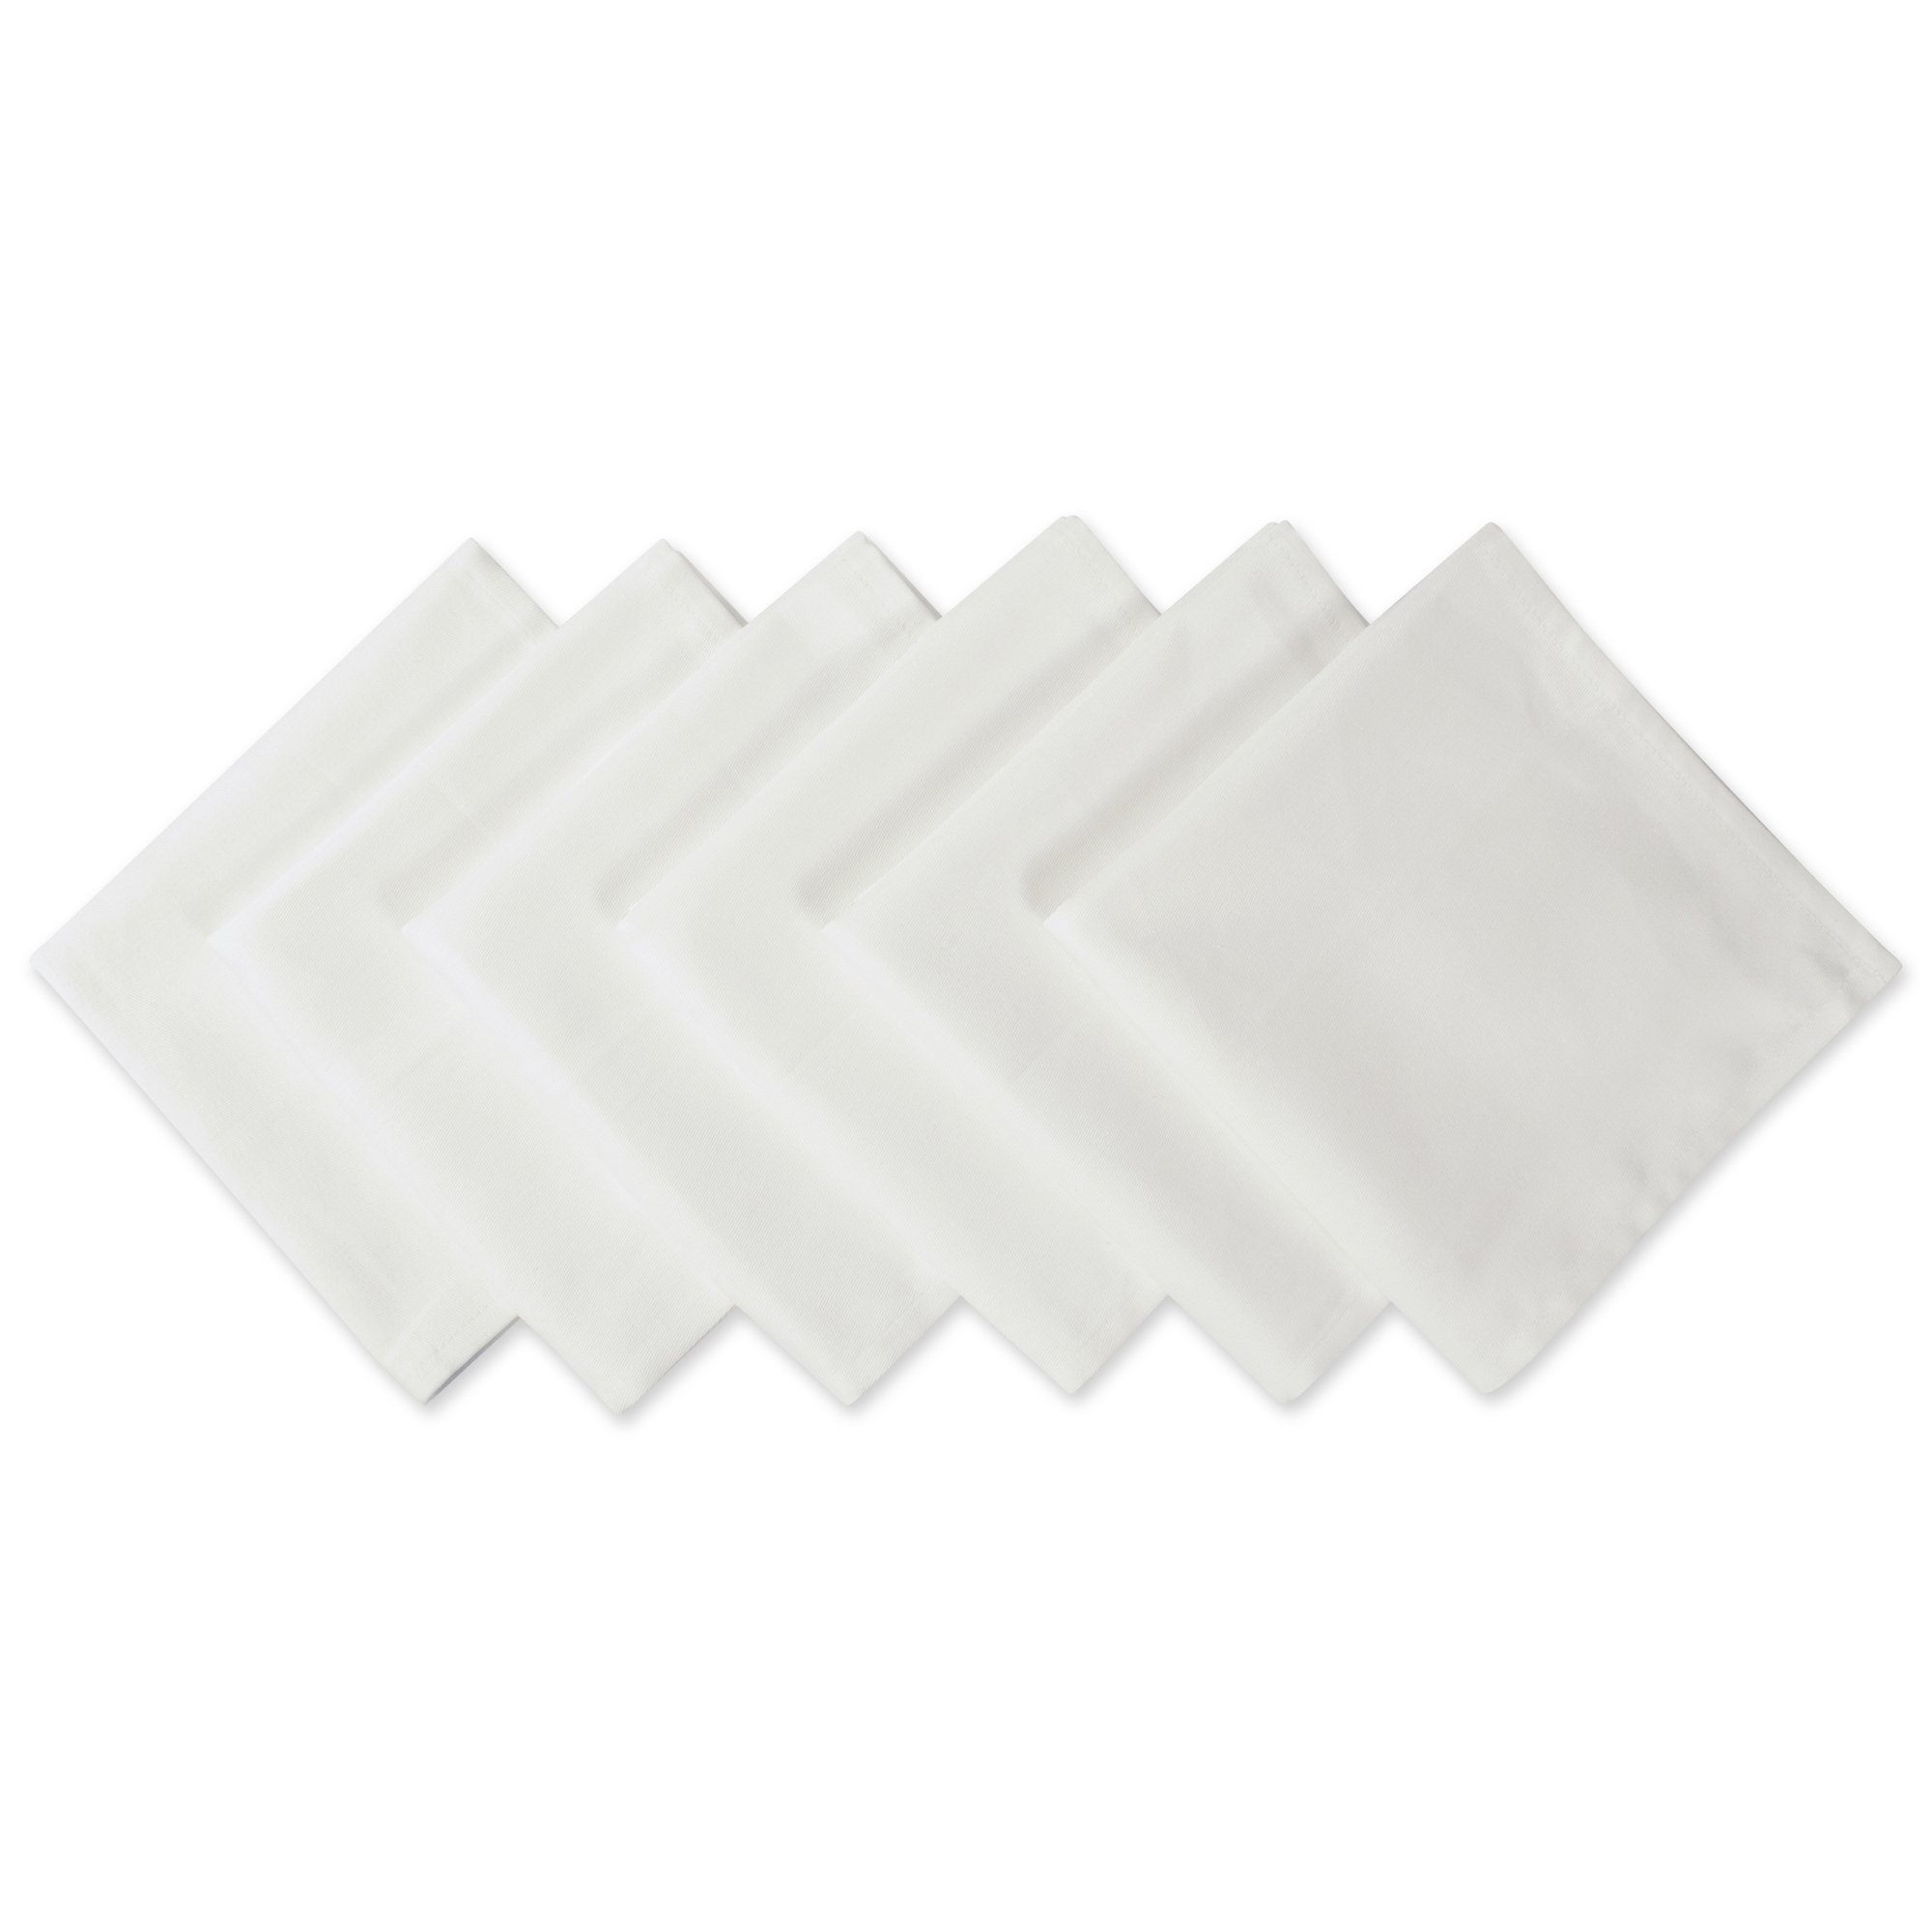 DII Wrinkle Resistant 20x20 Polyester Napkin, Pack of 6, White - Perfect for Brunch, Catering Events, Thanksgiving, Dinner Parties, Showers, Weddings and Everyday Use